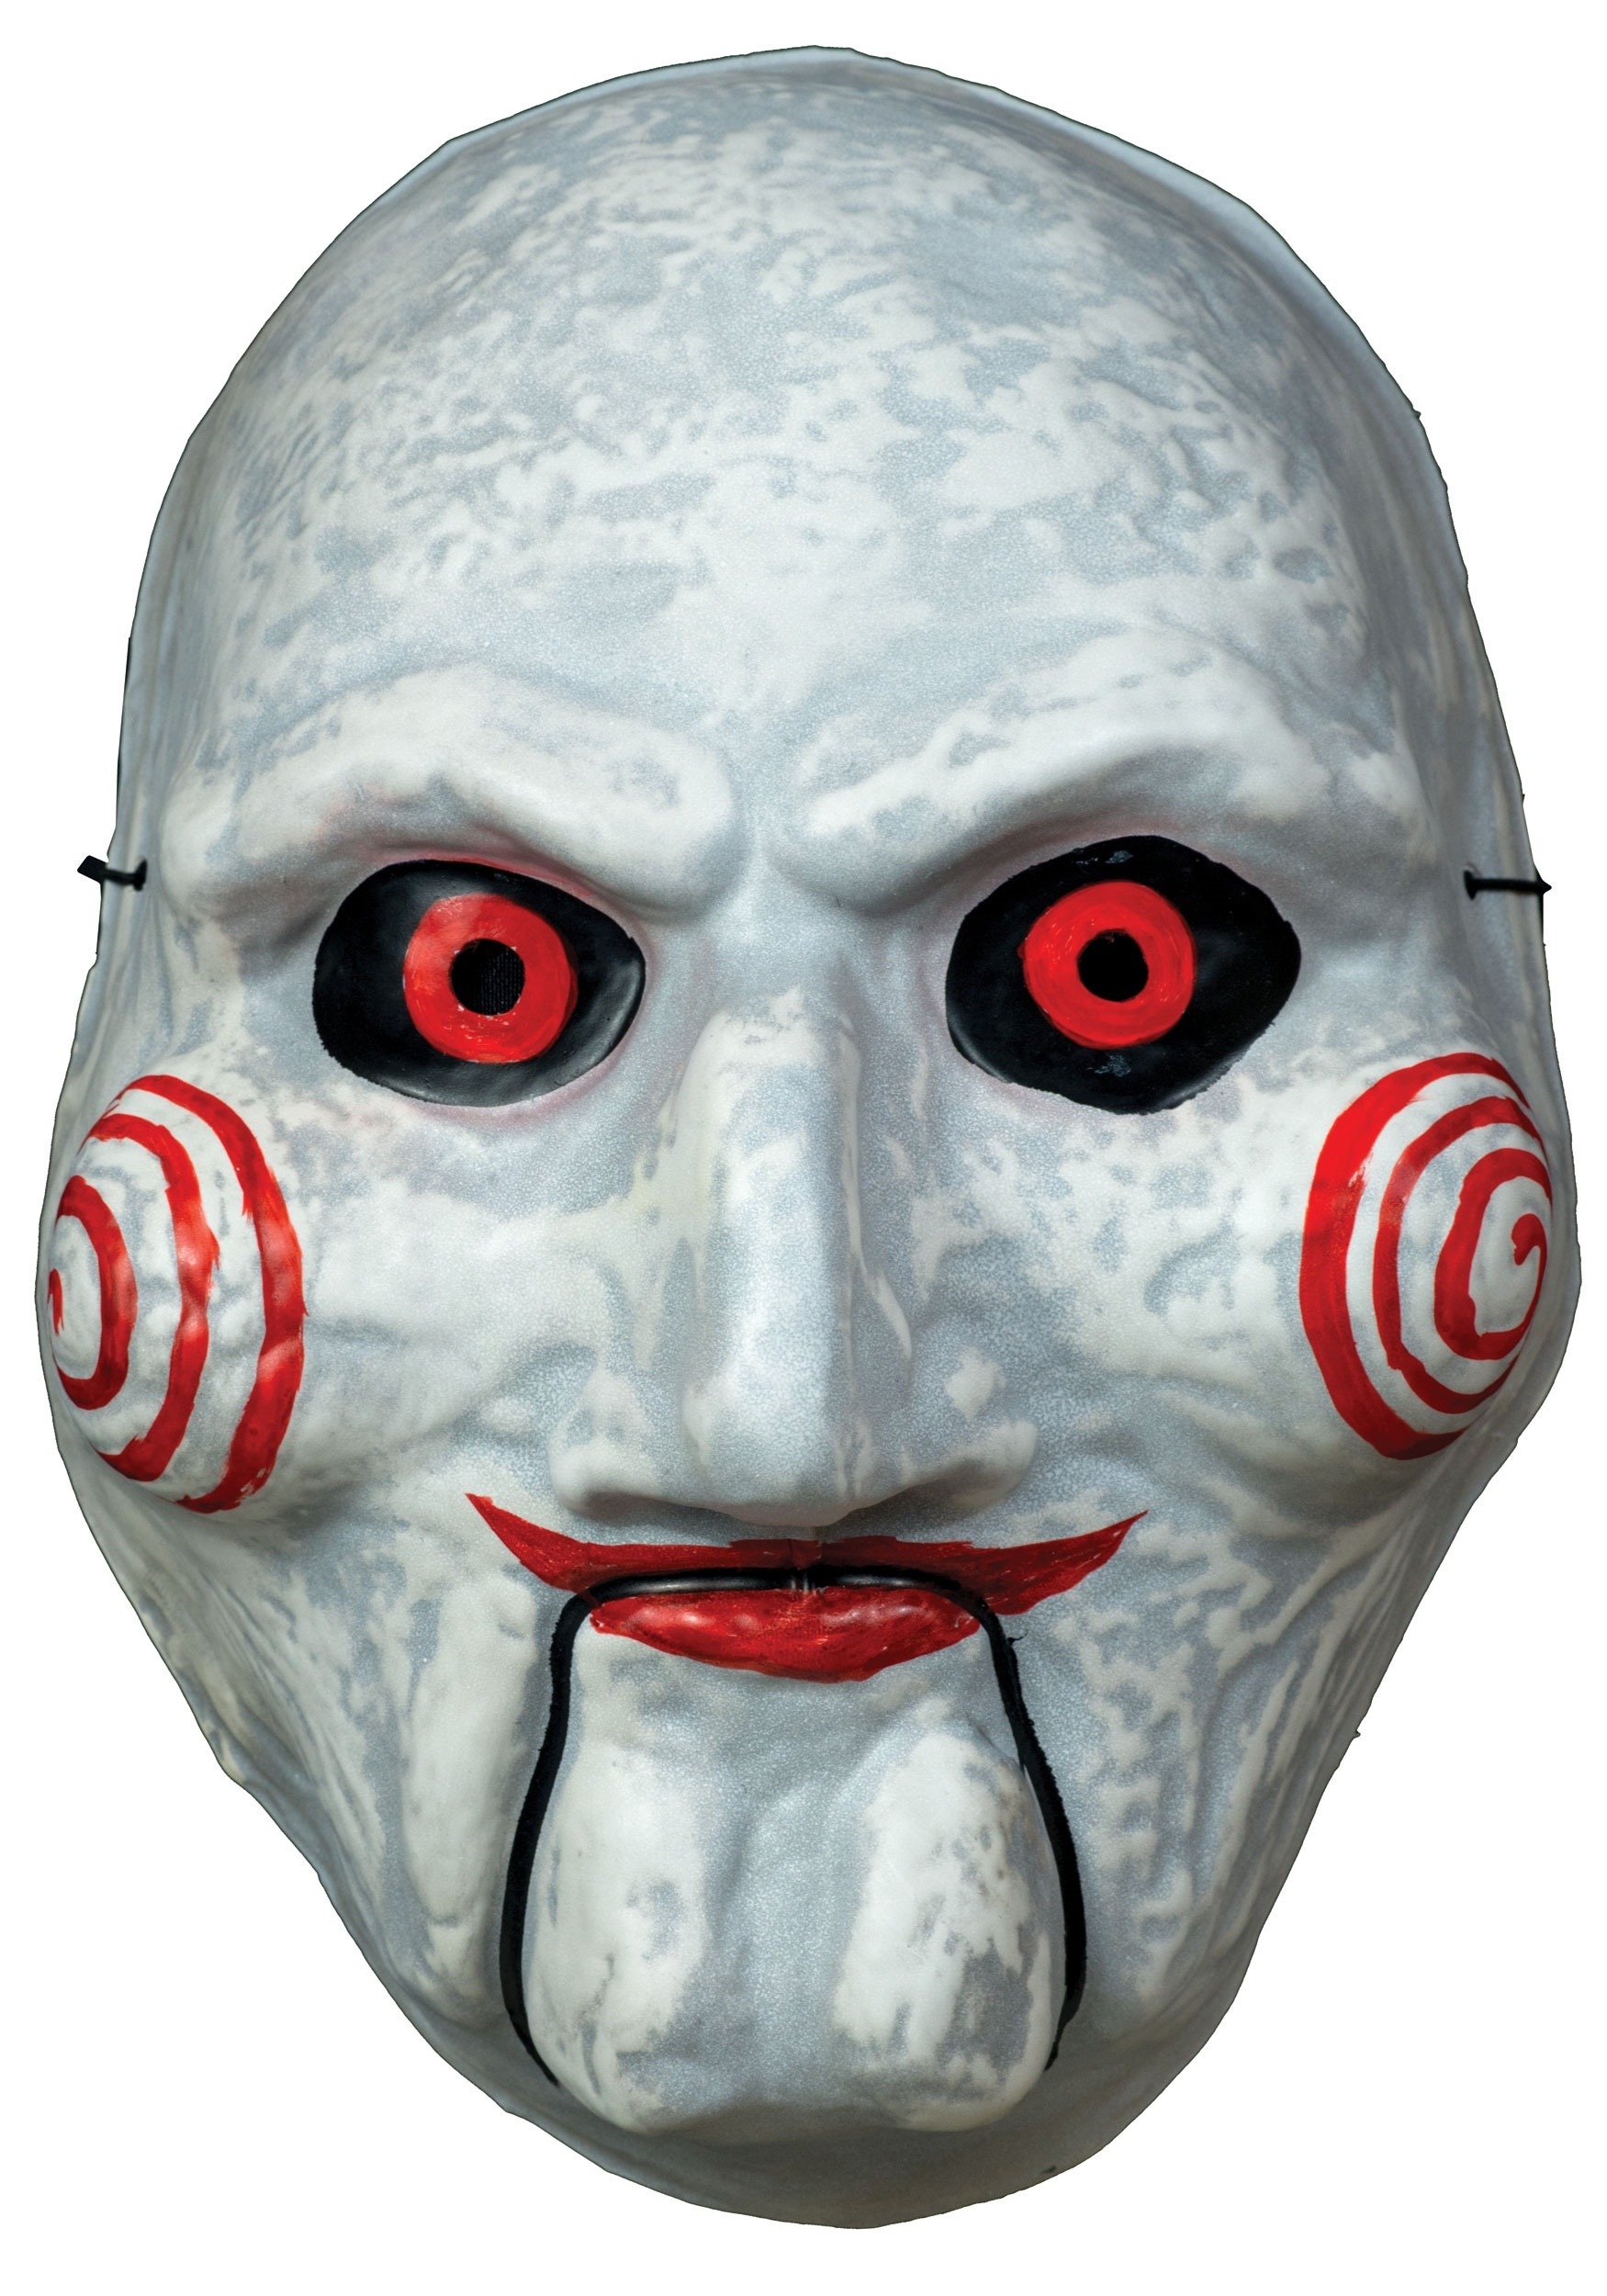 Adult saw billy puppet vacuform mask